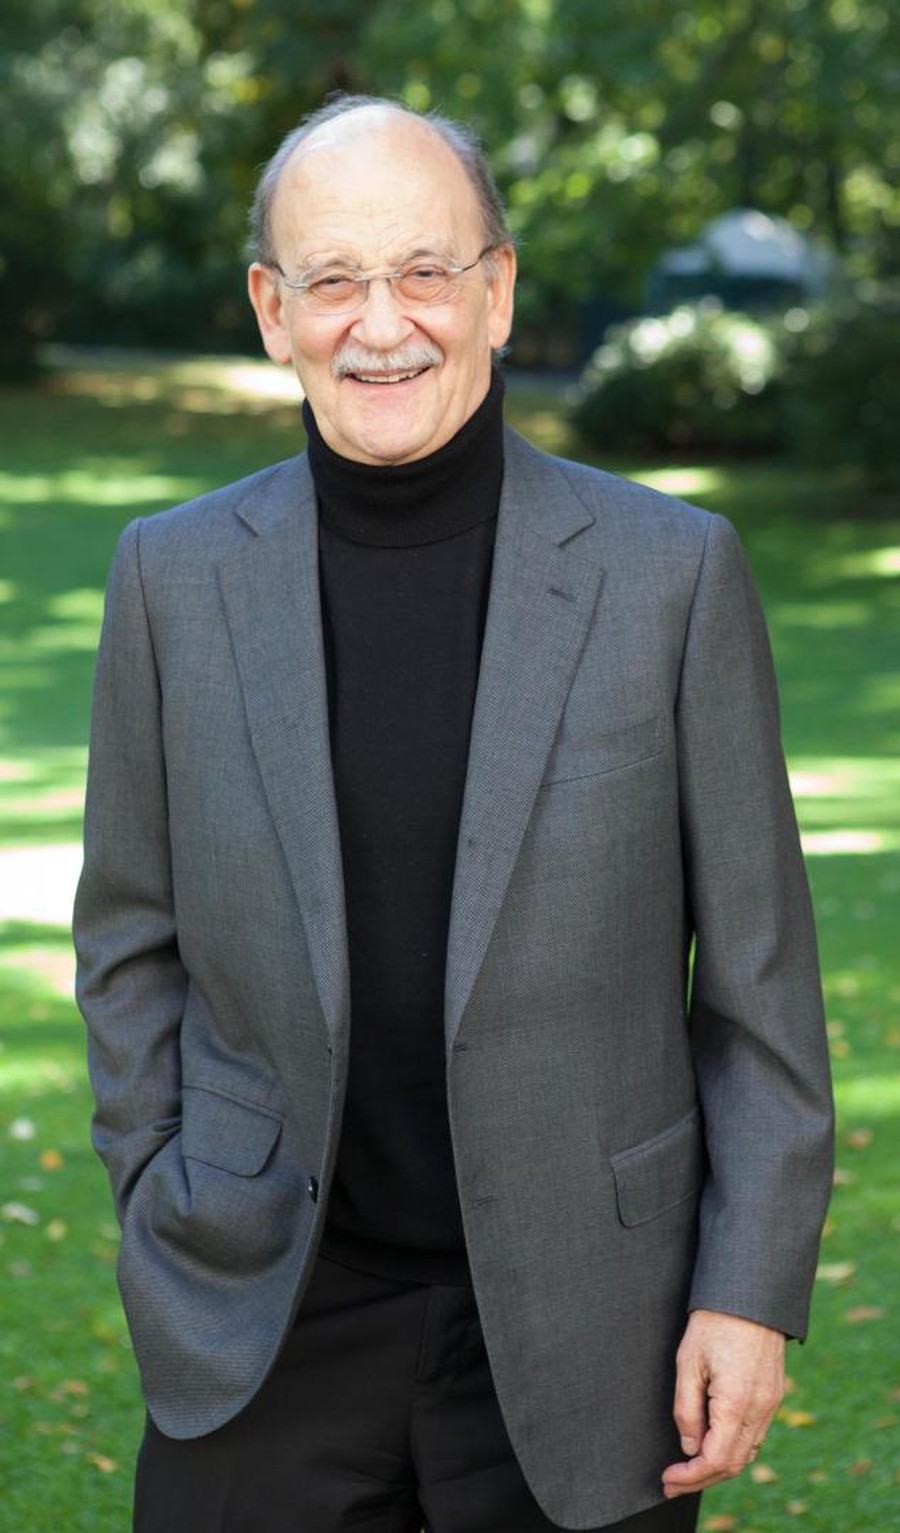 Moishe Postone (1942–2018), AB'63, AM'67, legendary professor in the history department, social theorist, and Marxian critic.